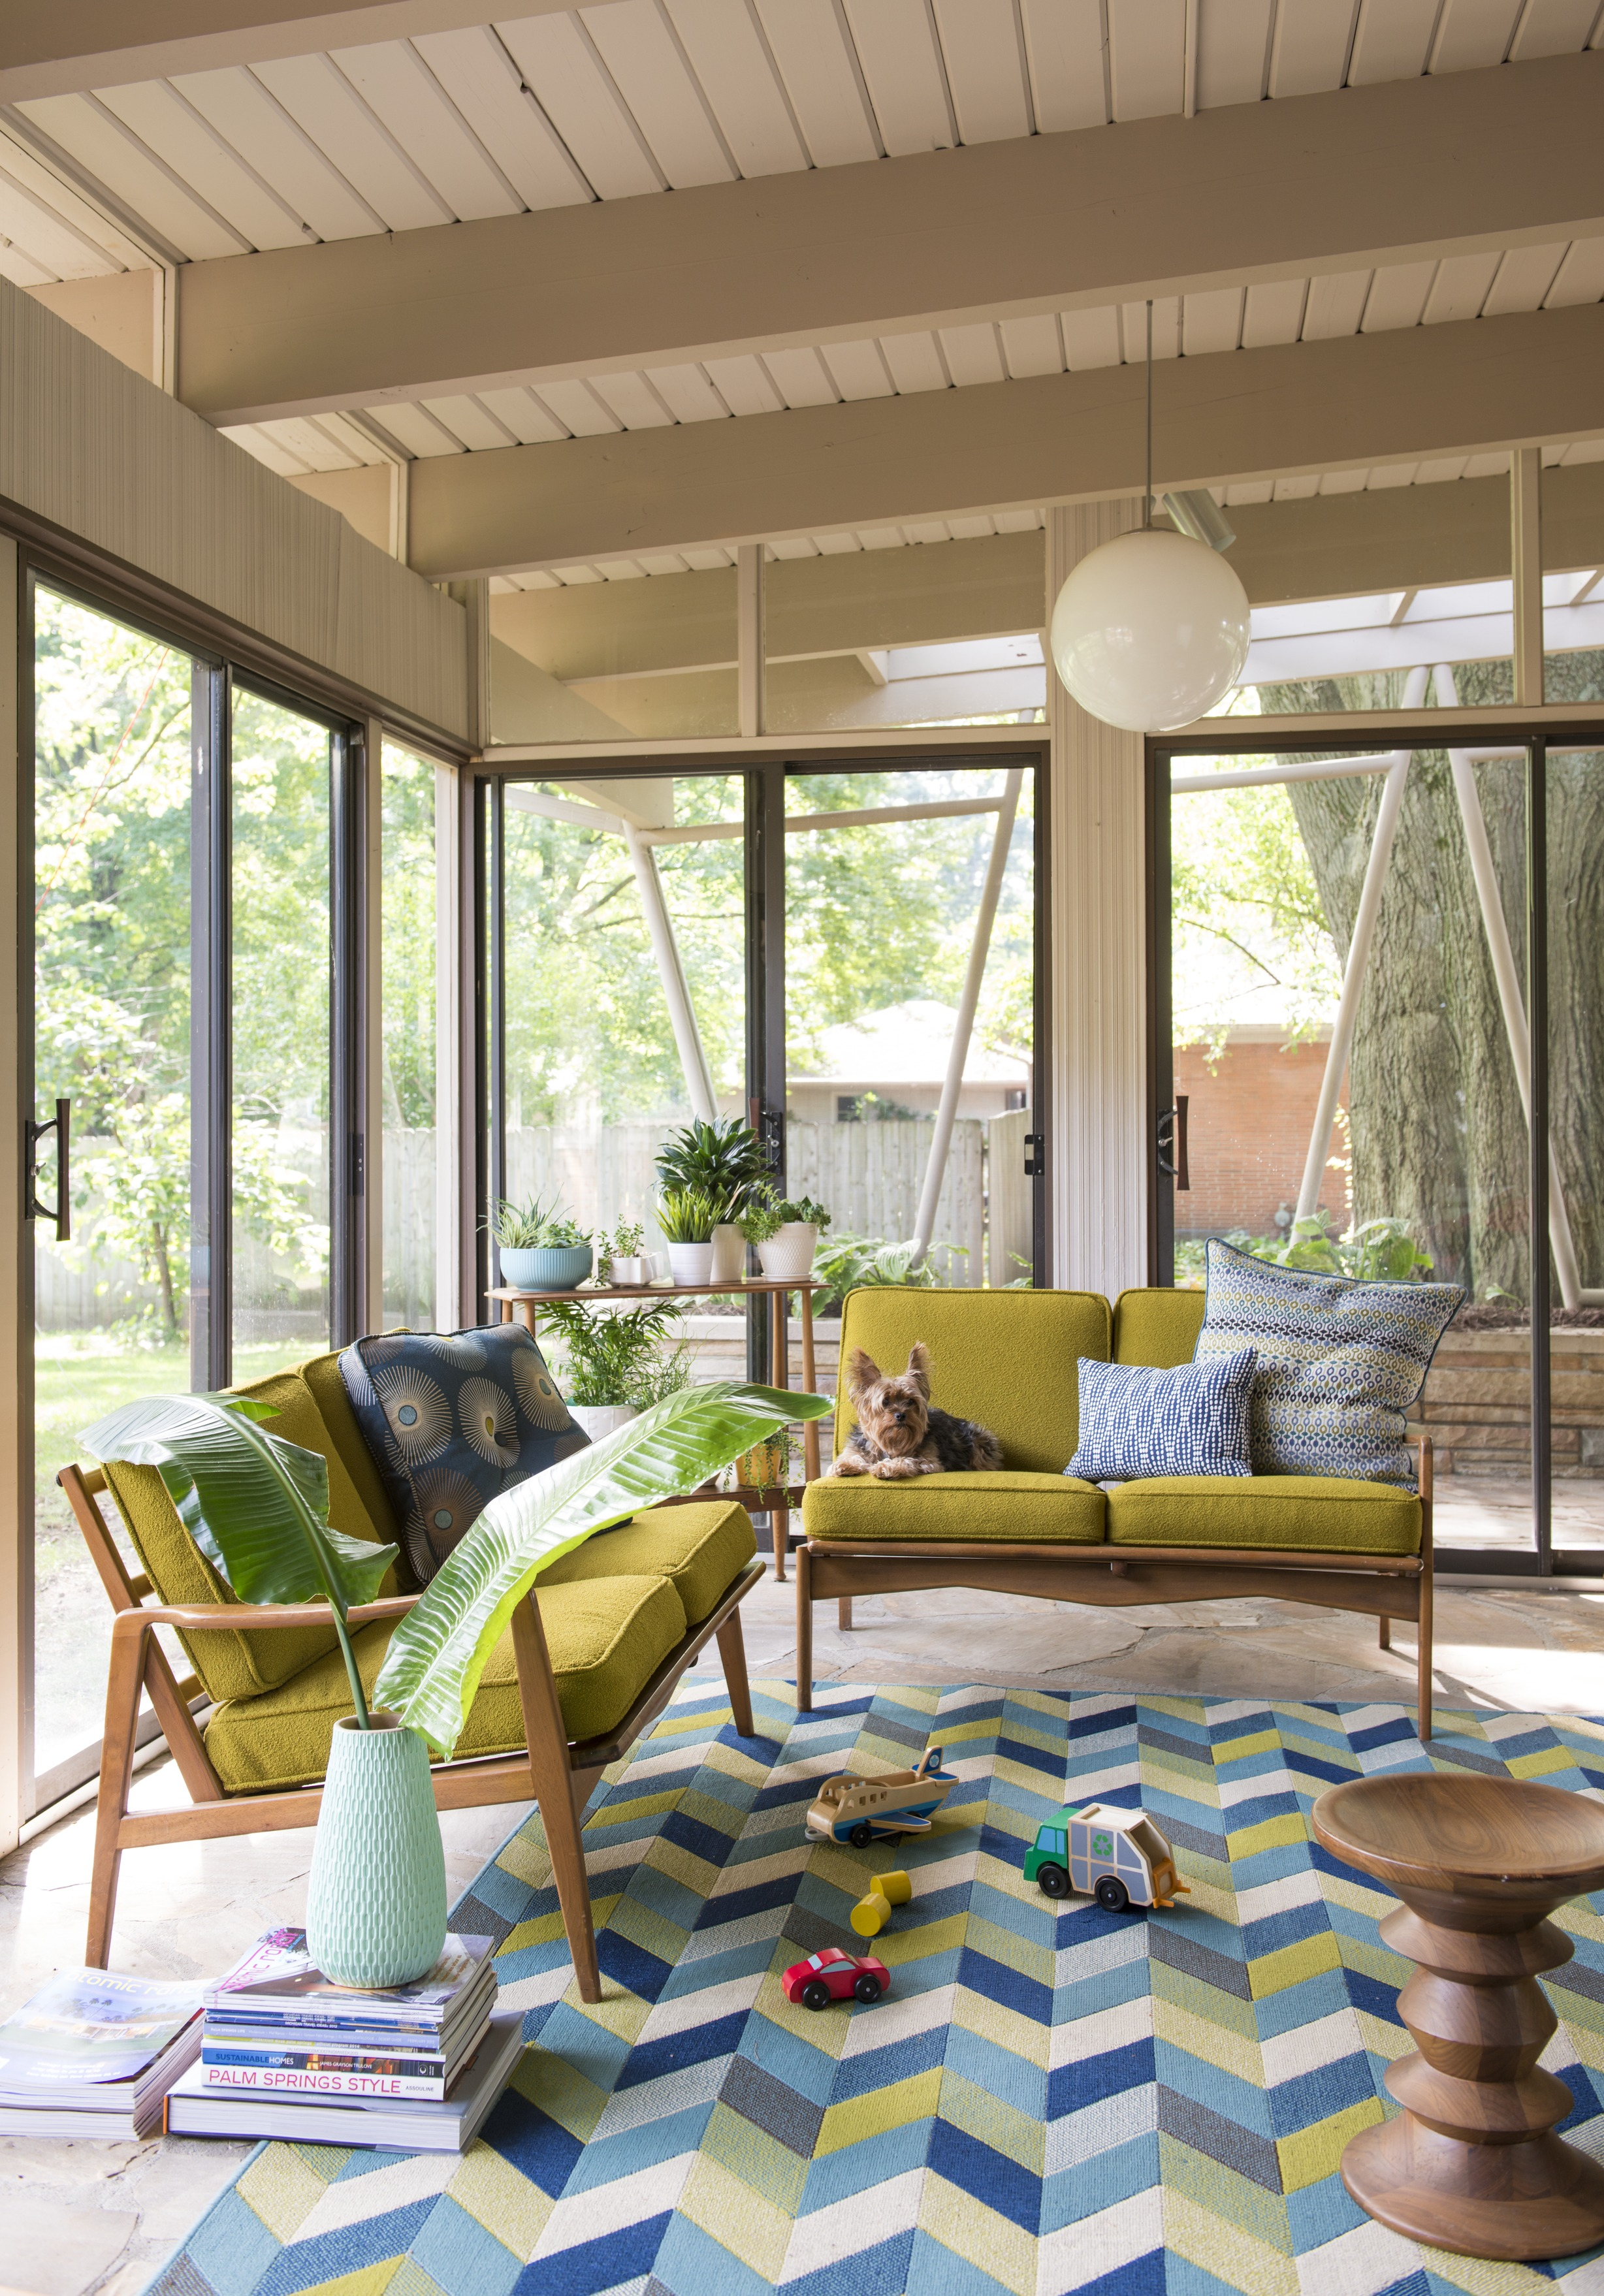 We Get Up To 40 Off Of Some Items Which Make Designing Midcentury Spaces Even More Affordable For Our Clients